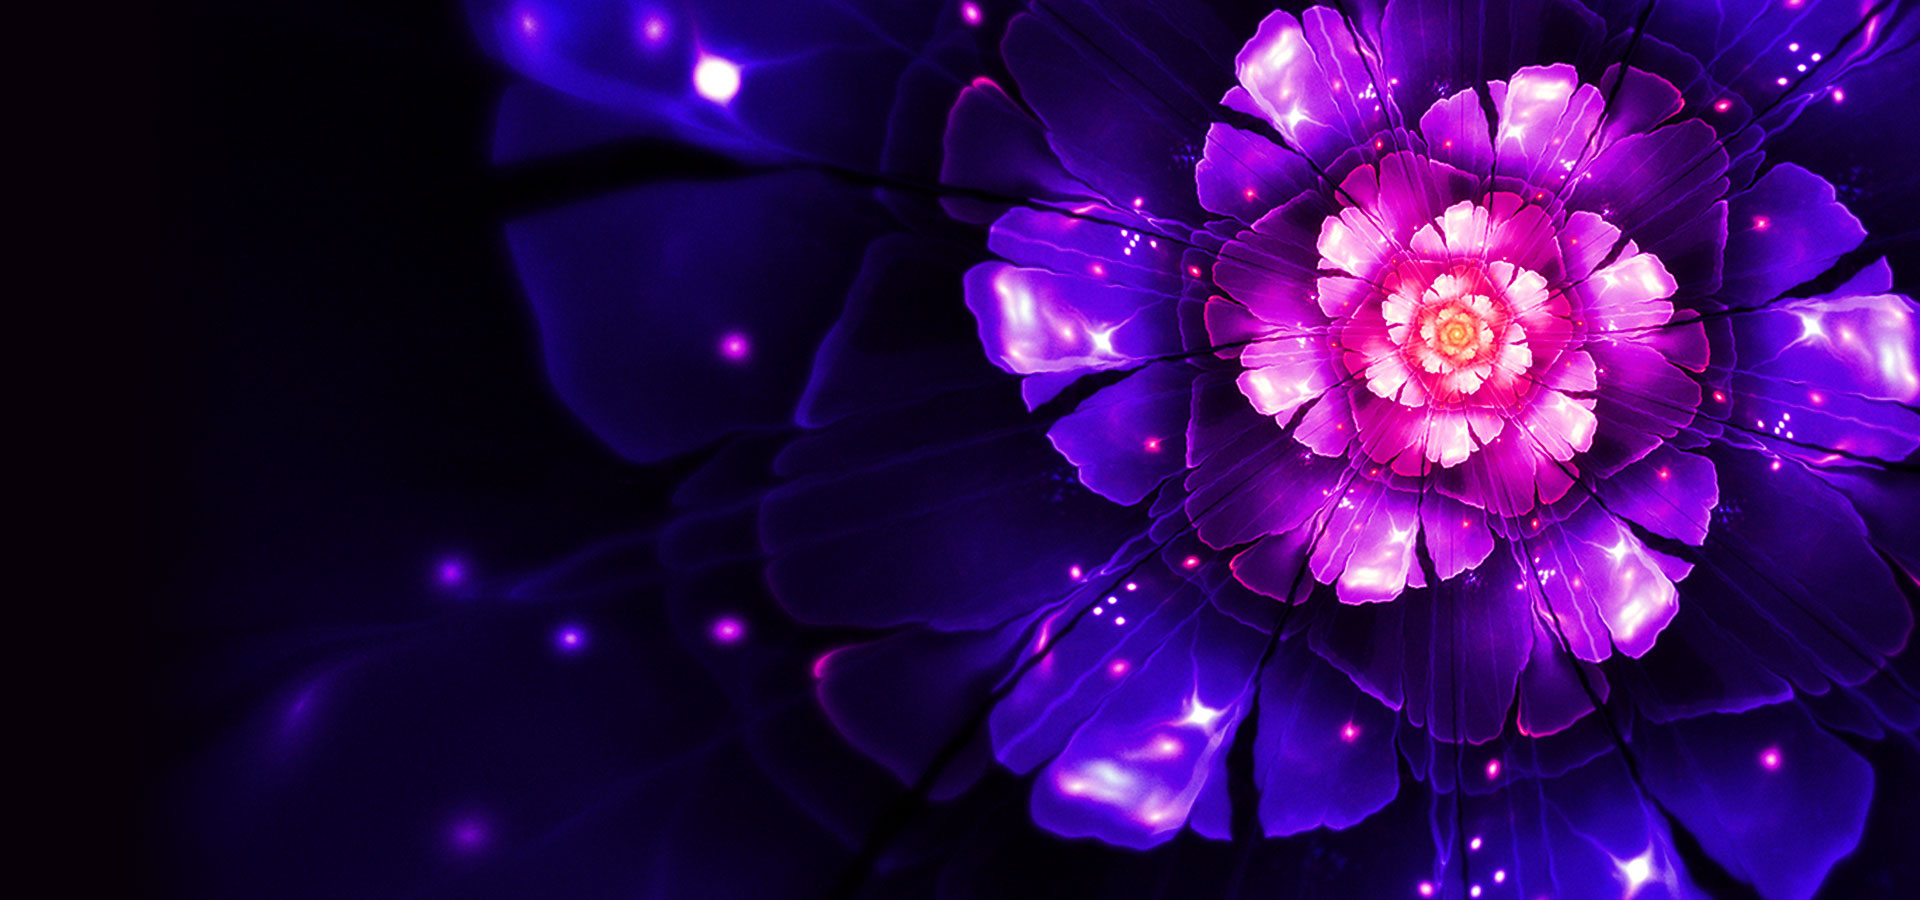 Cool Flower Background Image, Flower, Bright, Cool